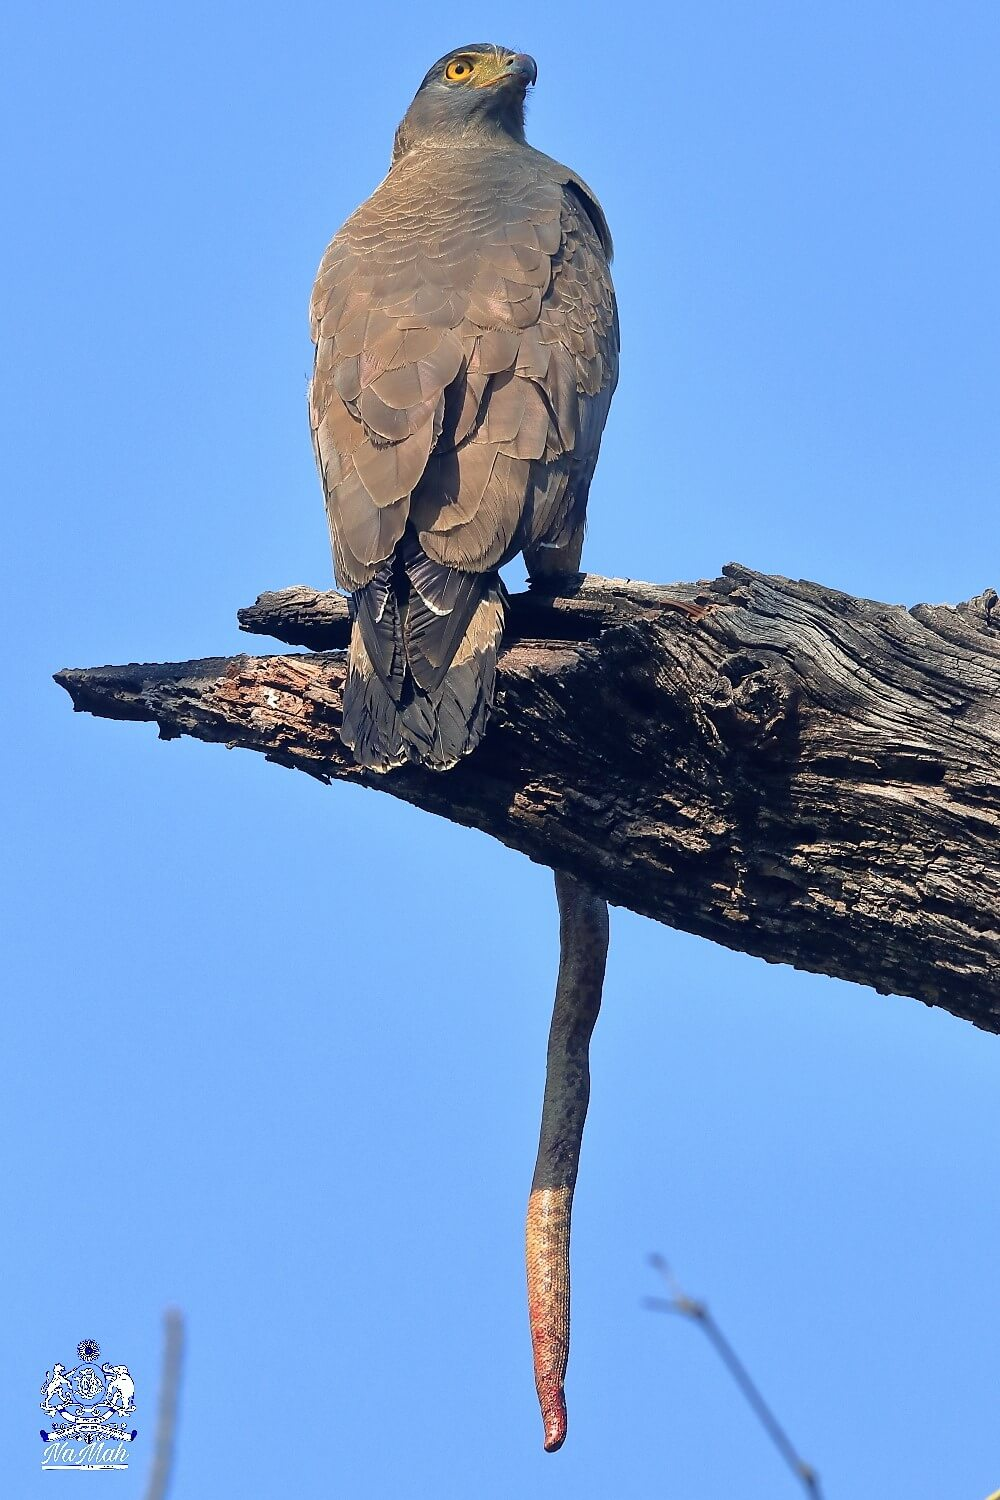 Serpent eagle Bird eating snake kill sitting on tree top